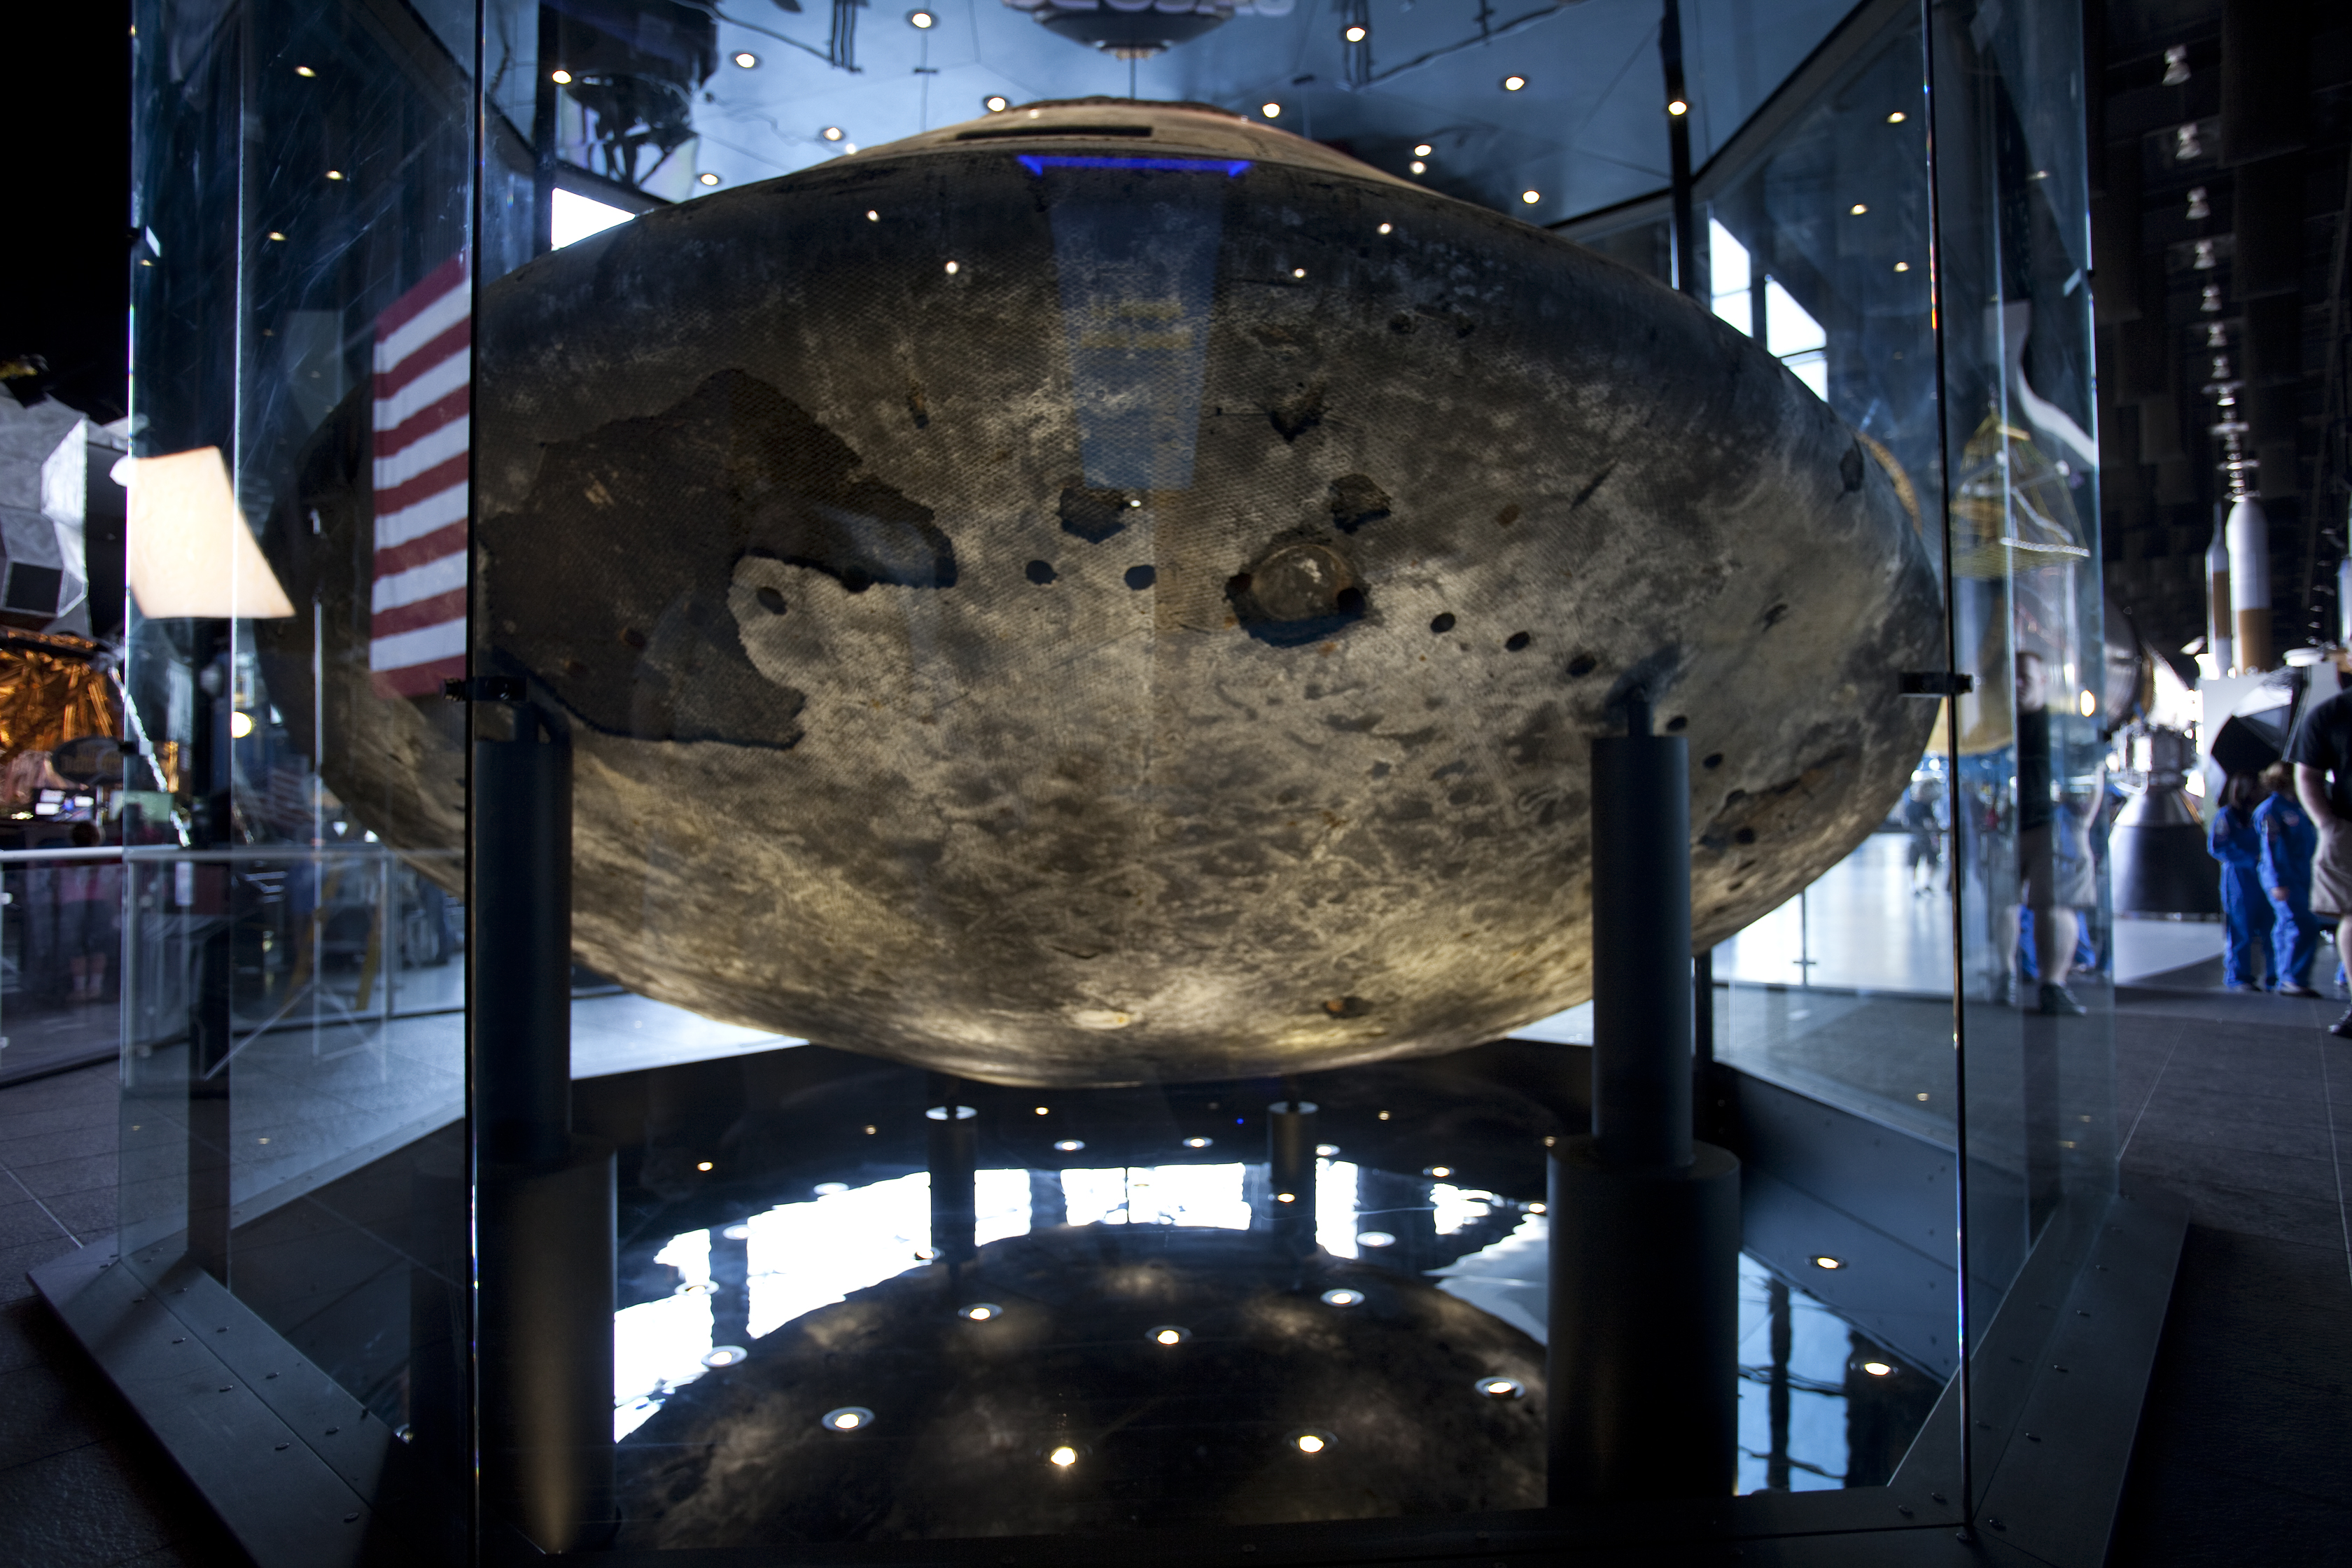 apollo space capsule heat shield - photo #37